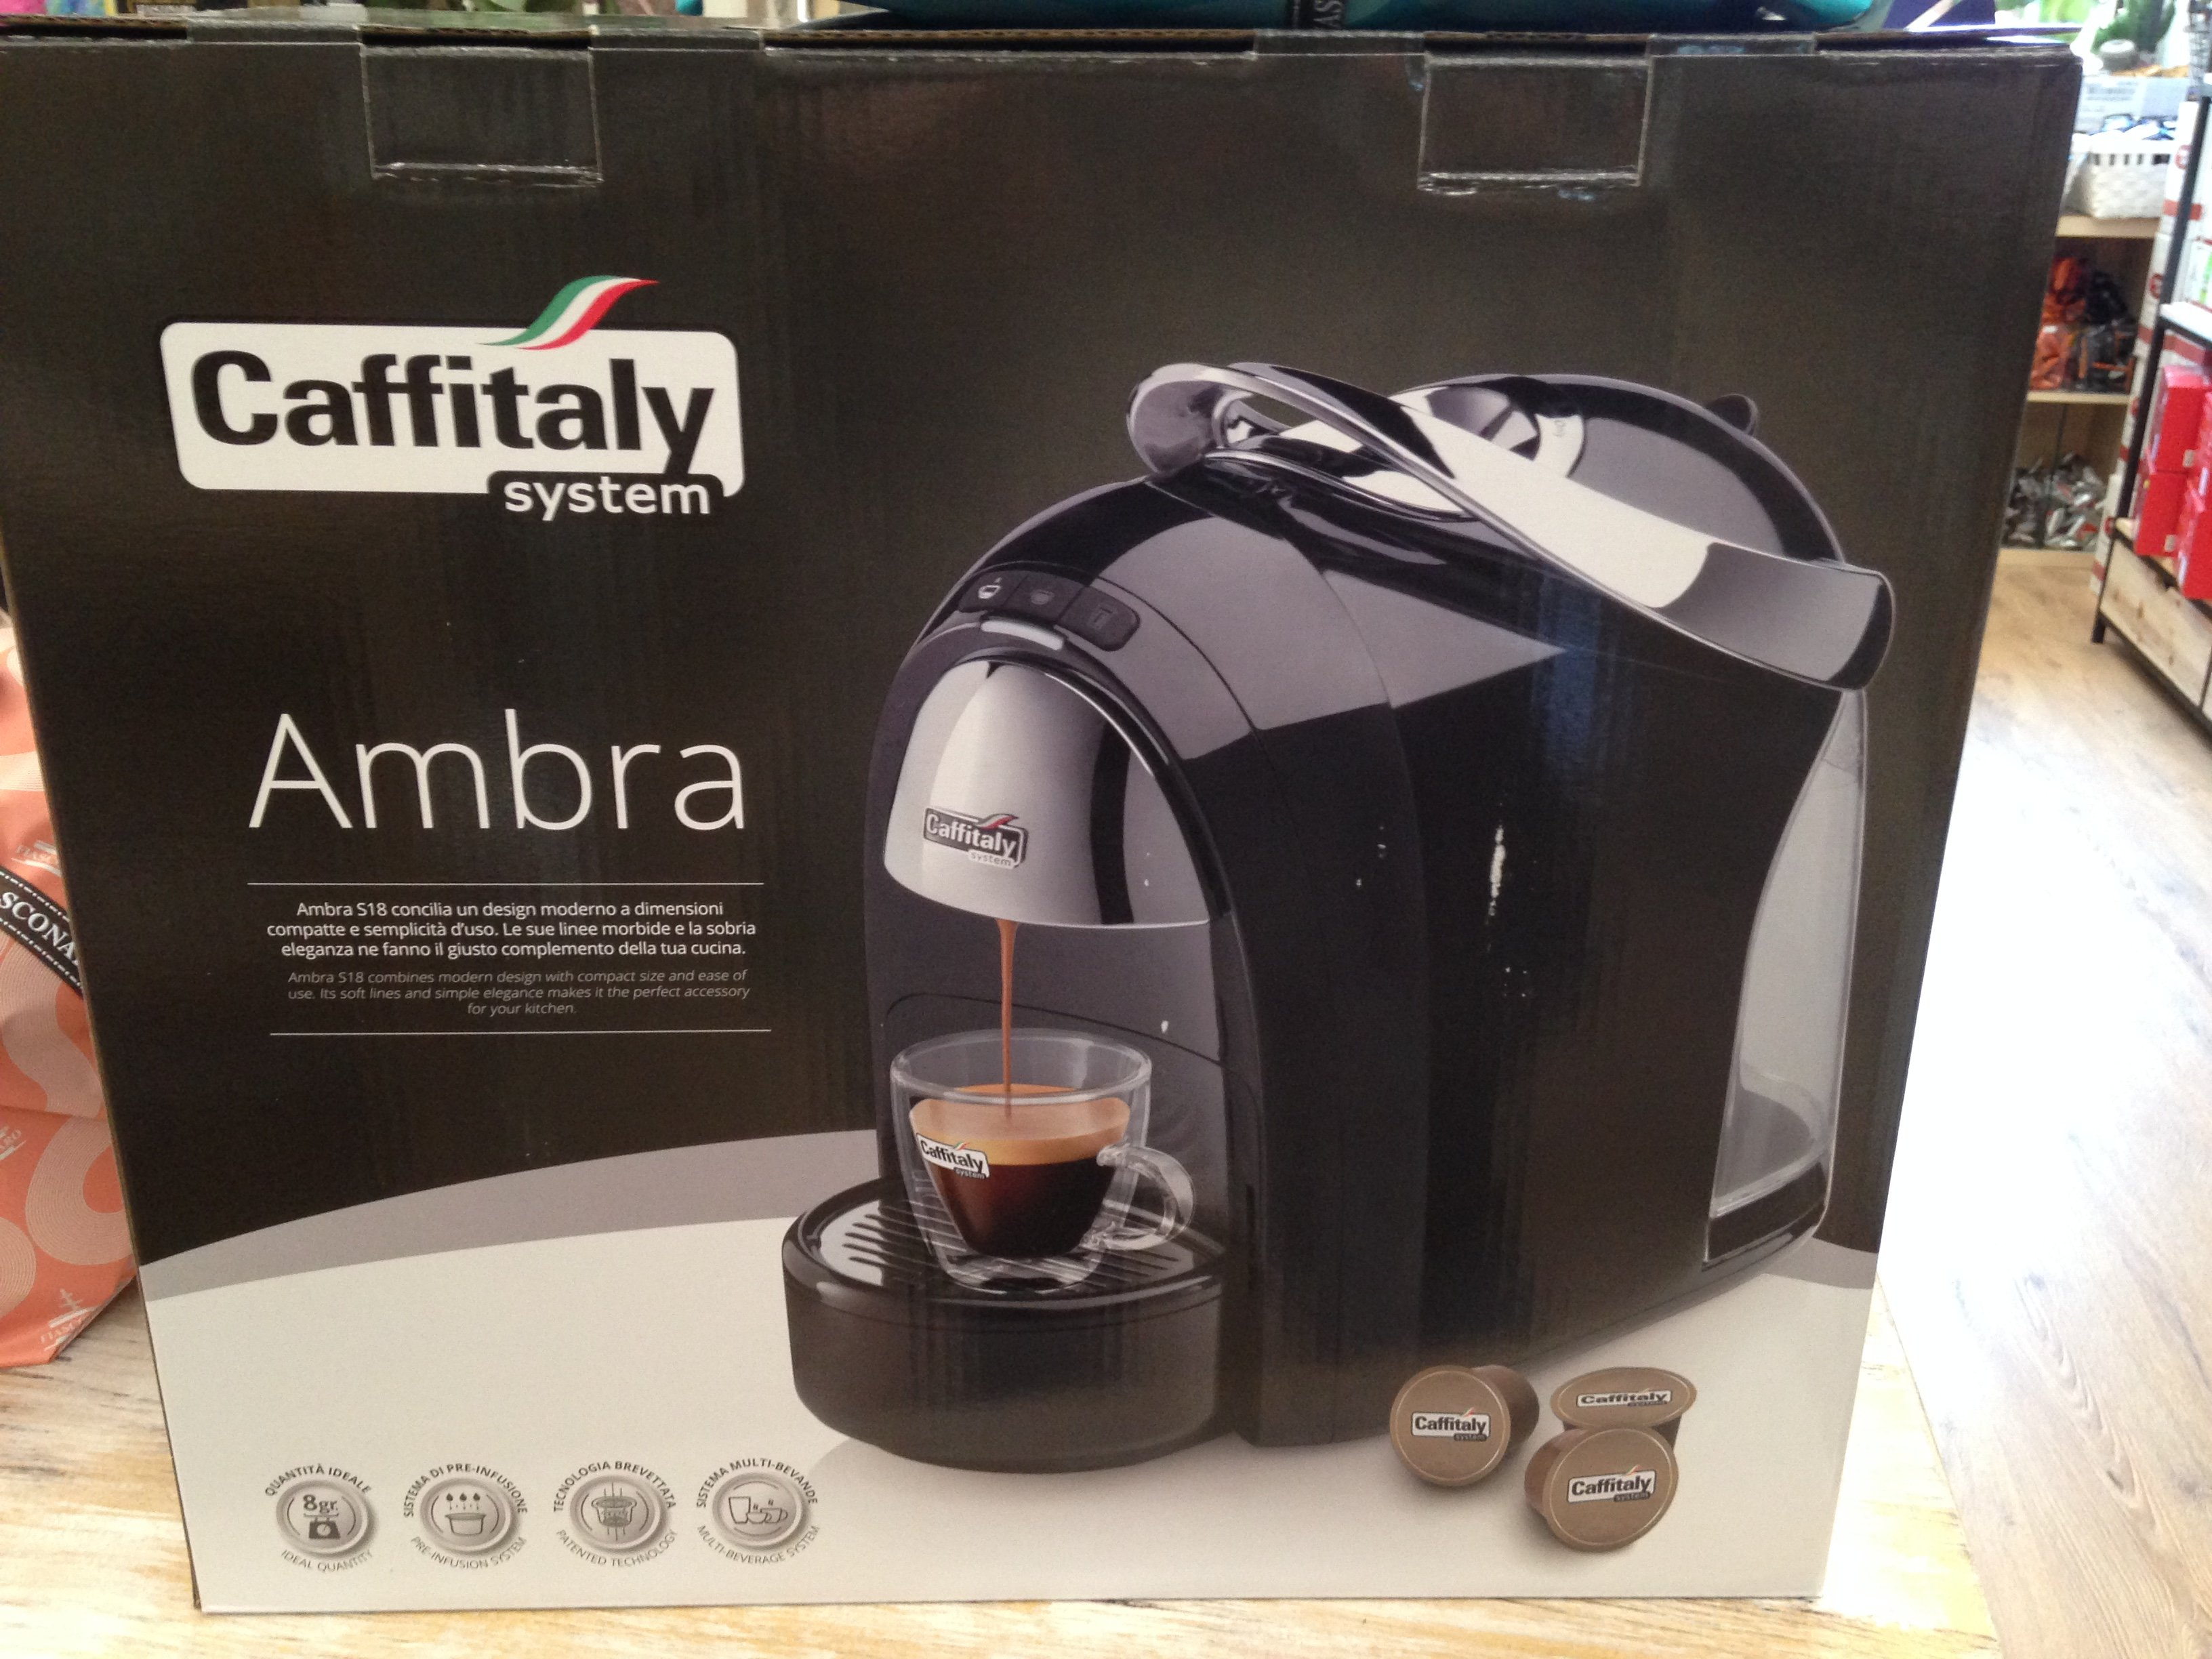 Ambra S18 Caffitaly System